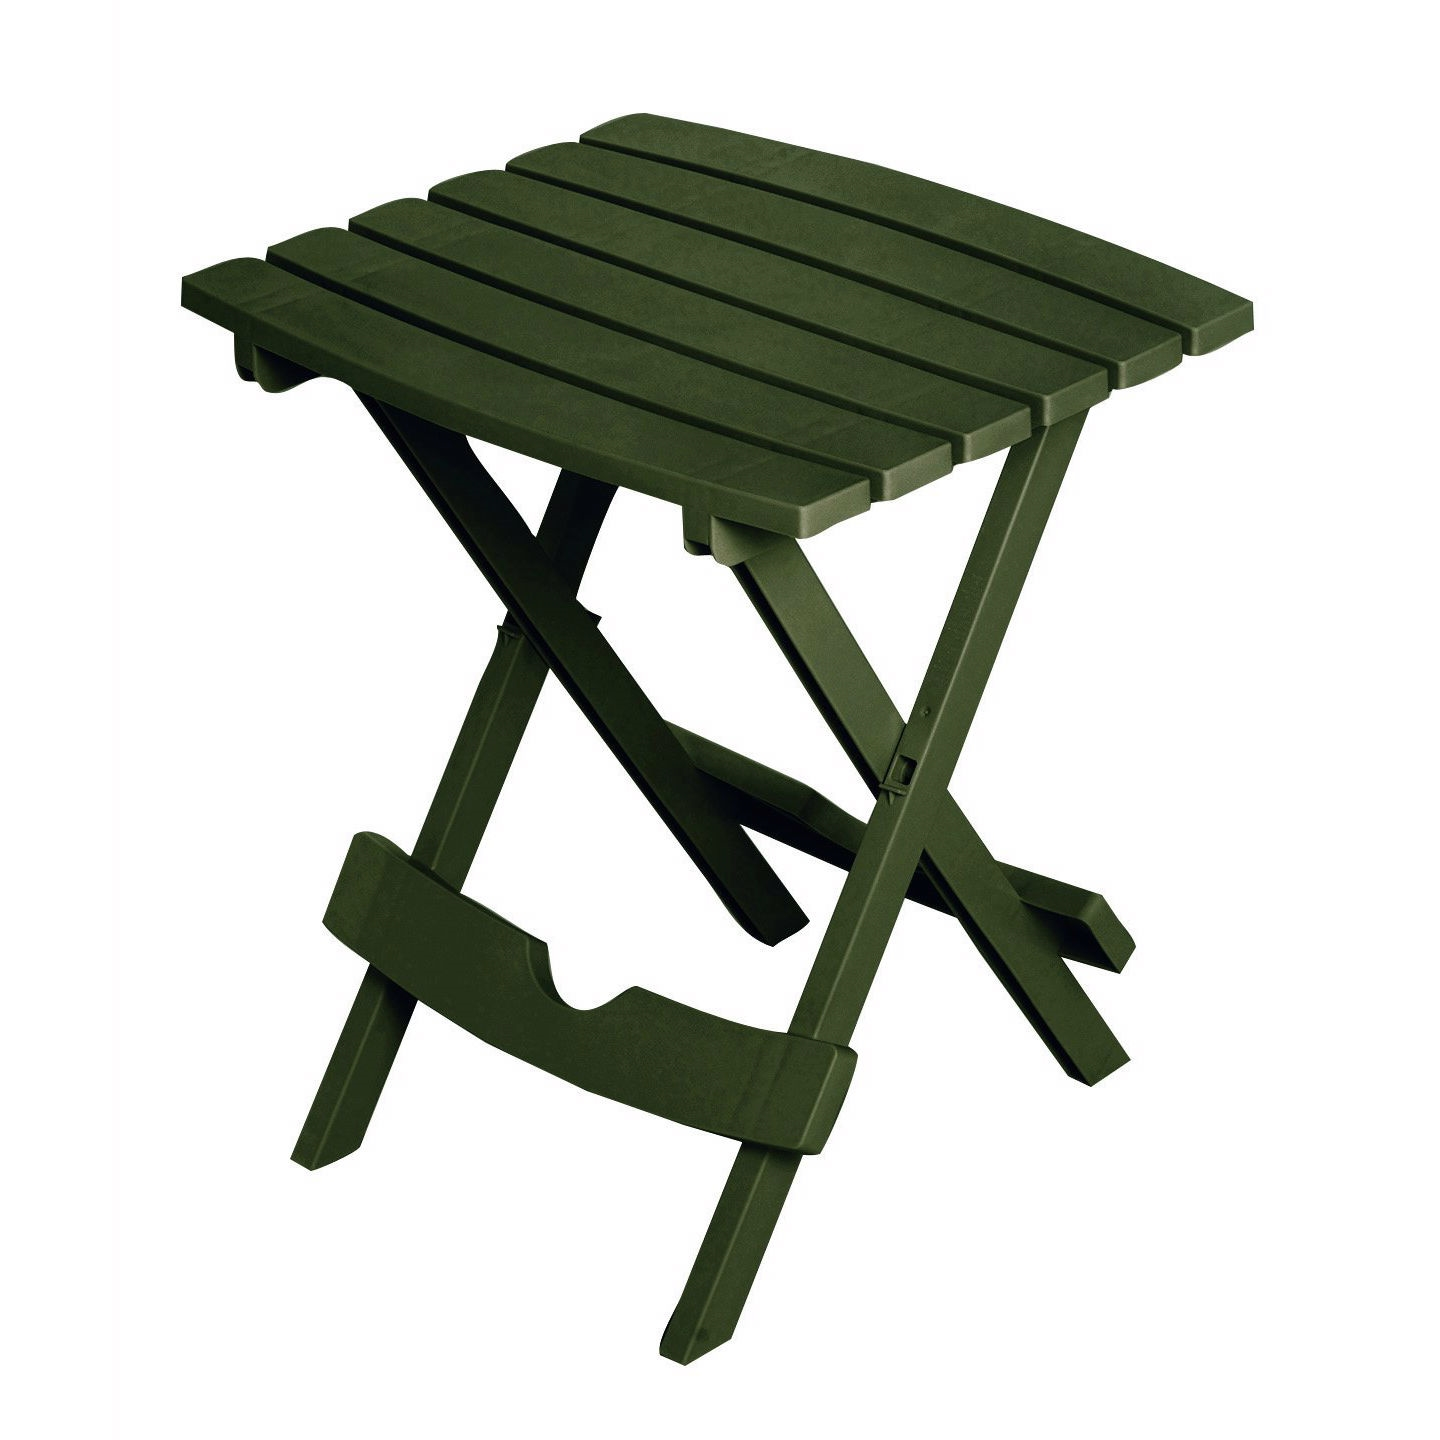 Superbe Folding Outdoor Side Table In Earth Brown Durable Plastic Resin